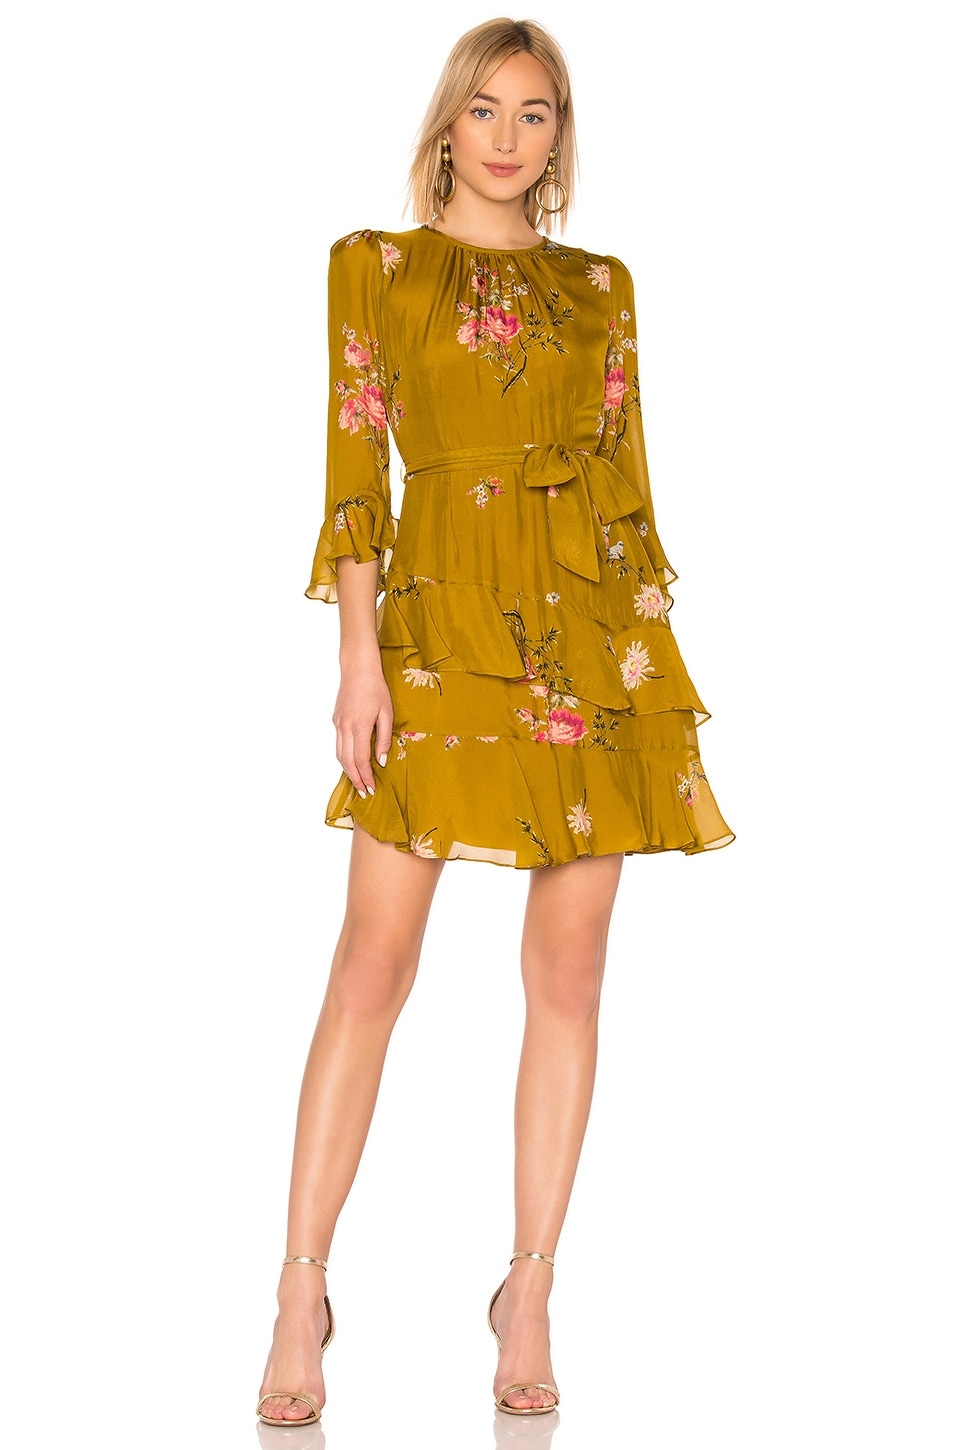 Joie Kayane Dress in Goldenrod